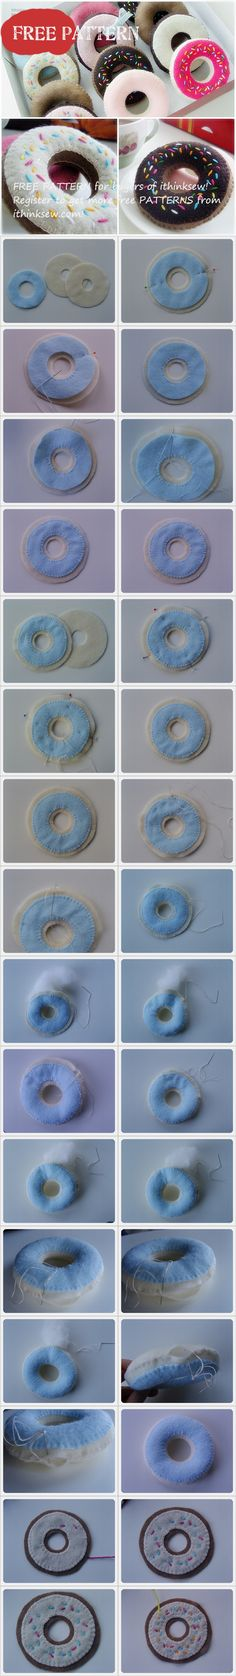 Free Pattern for buyers - Felt Ducan Donut Mehr Felt Diy, Felt Crafts, Fabric Crafts, Sewing Toys, Sewing Crafts, Sewing Projects, Felt Food Patterns, Sewing Patterns, Diy For Kids